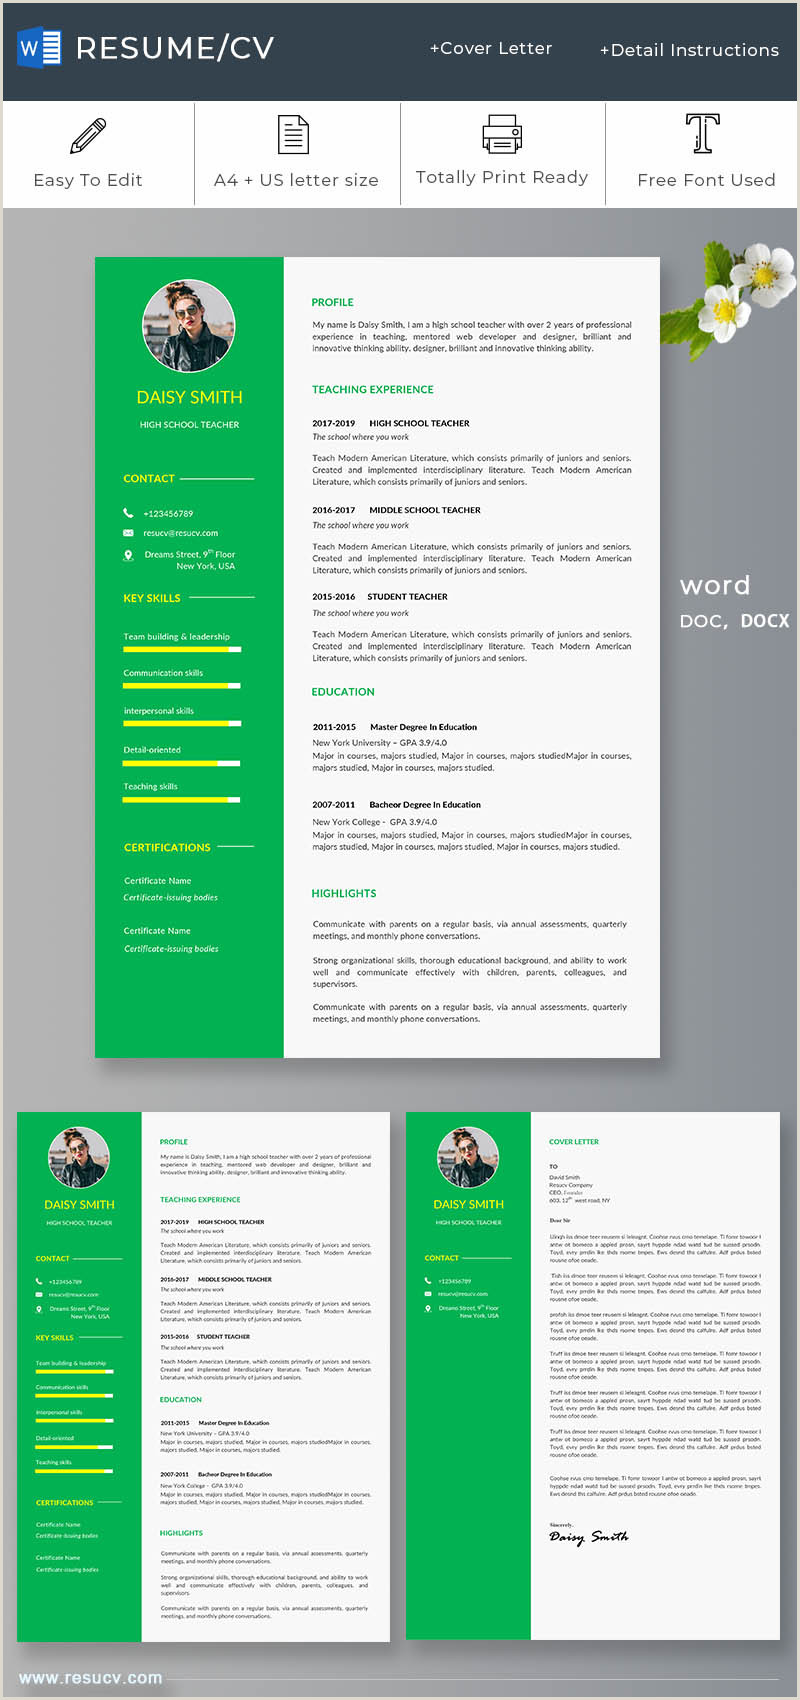 Cv format for Environmental Jobs Green School Teacher Resume Cv Template with Cover Letter